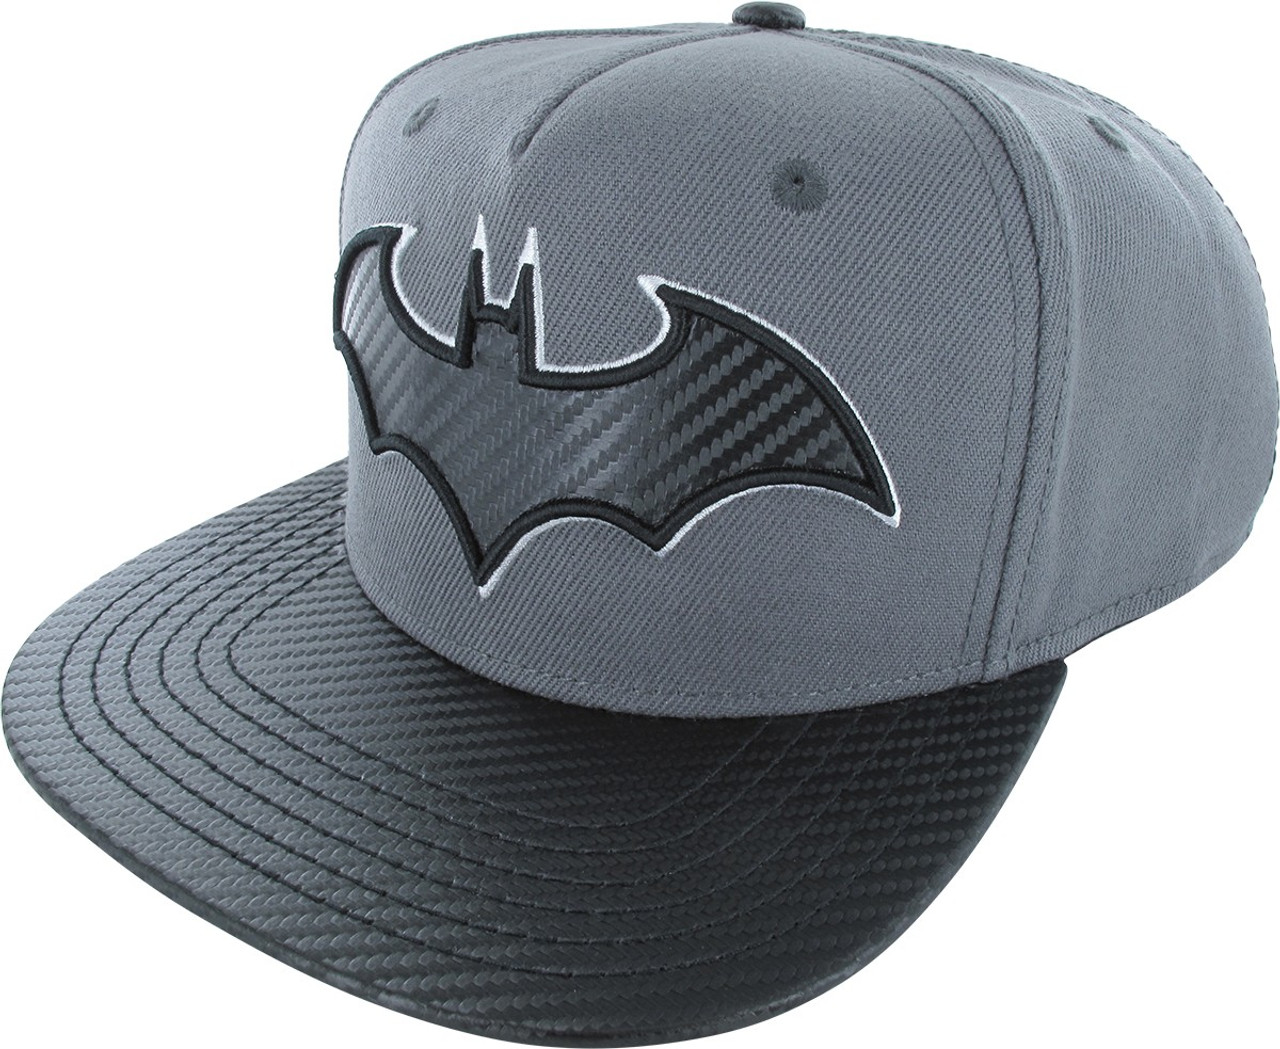 hat-batman-logo-carbon-fiber-snap  07208.1525380405.jpg c 2 imbypass on 74275170cd0